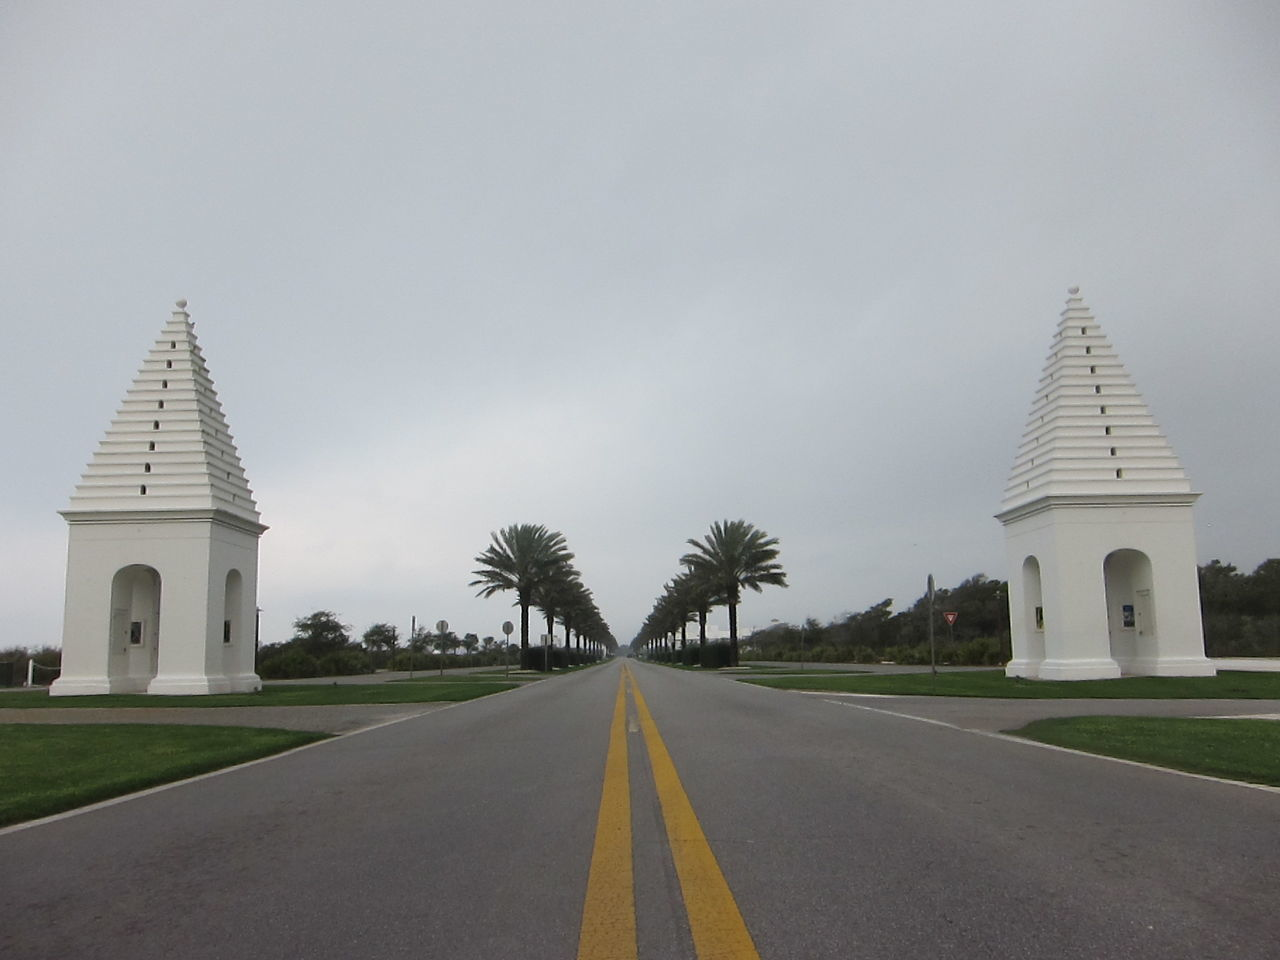 Alysbeach Architecture Building Exterior Built Structure Day Florida No People Outdoors Palm Trees Road Roadway Sky The Way Forward Transportation Tree Lined Roadway